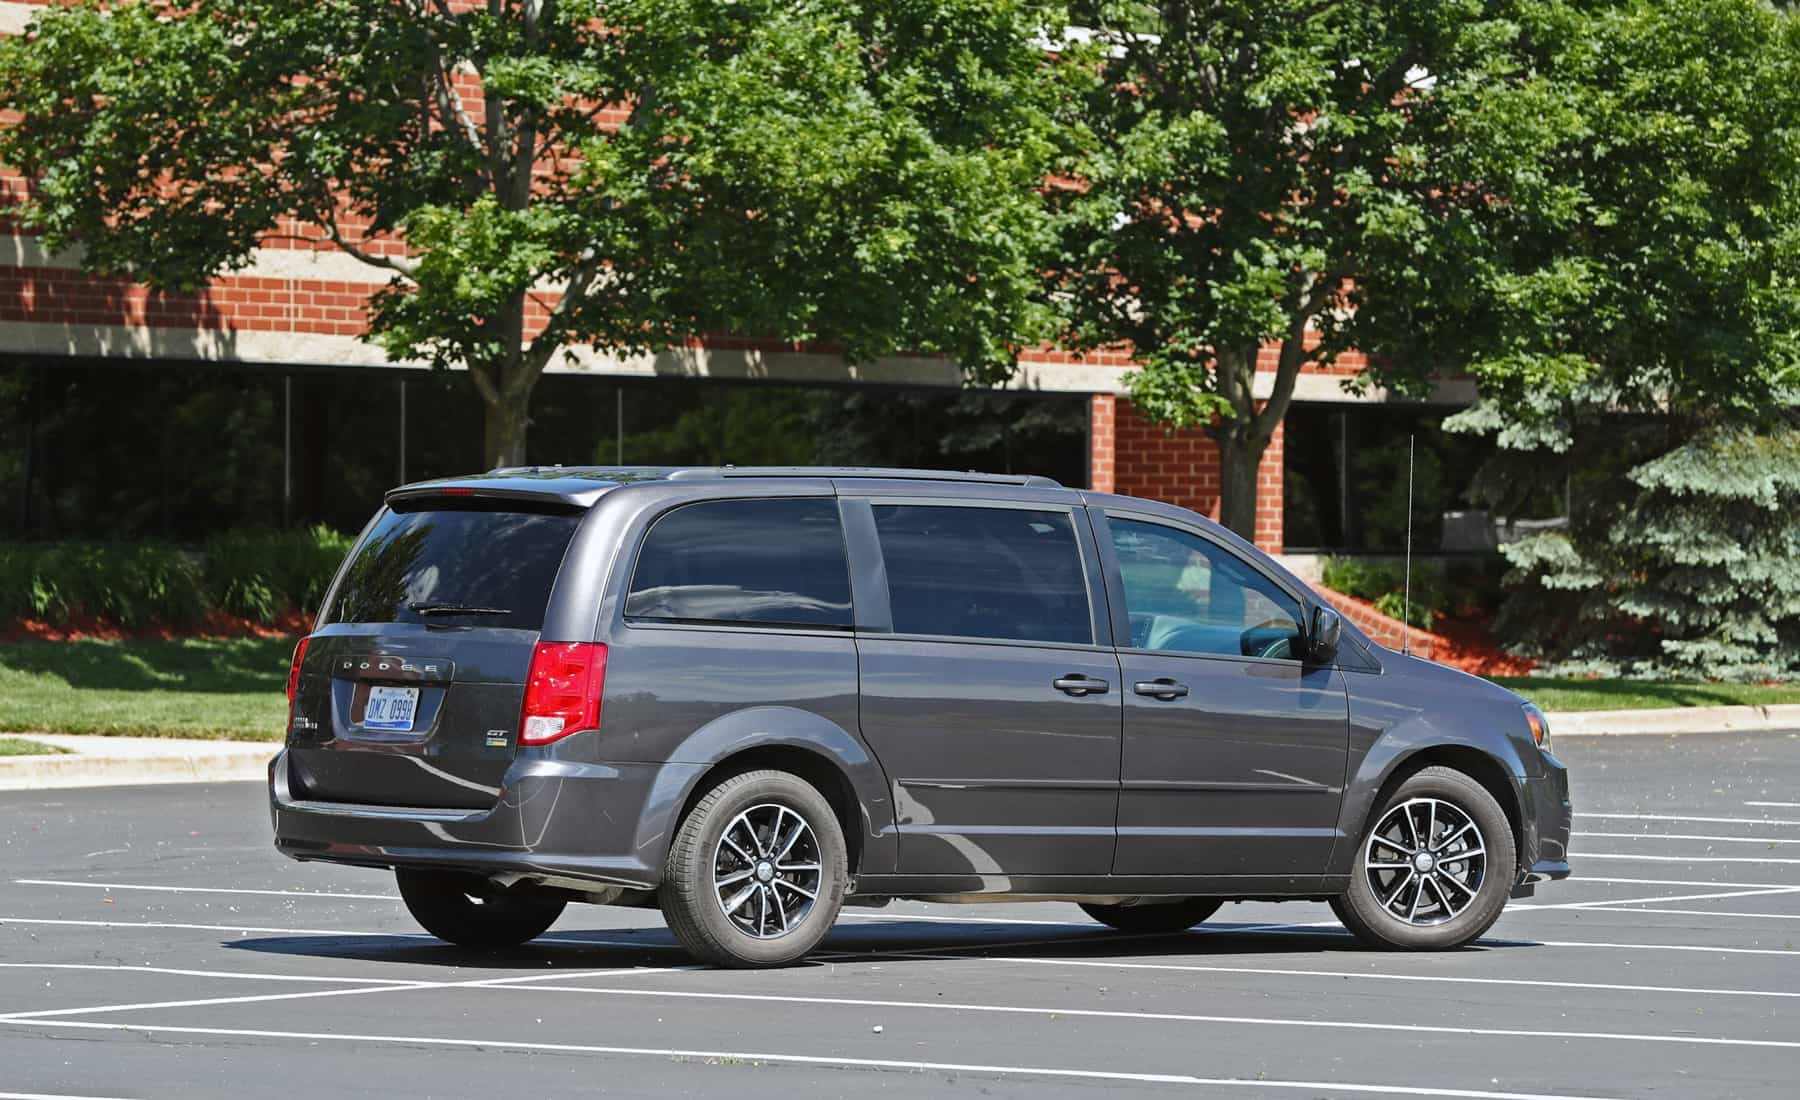 2017 Dodge Grand Caravan Exterior Side And Rear (View 37 of 47)